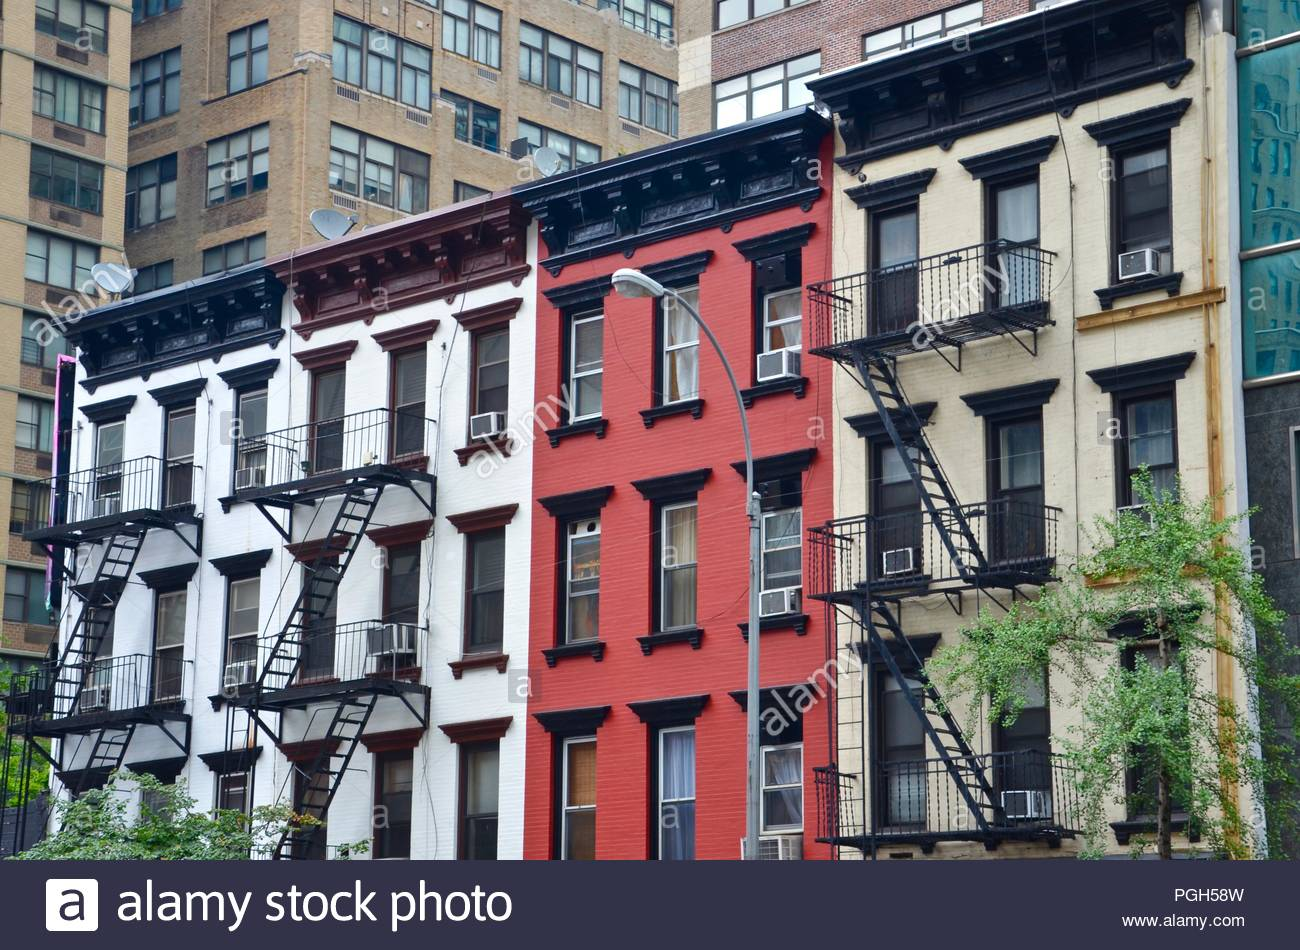 Architecture in New York City, USA, homes, living, exterior design, sunny, vacation, windows, fire escape stairways, investment, colorful, expensive - Stock Image